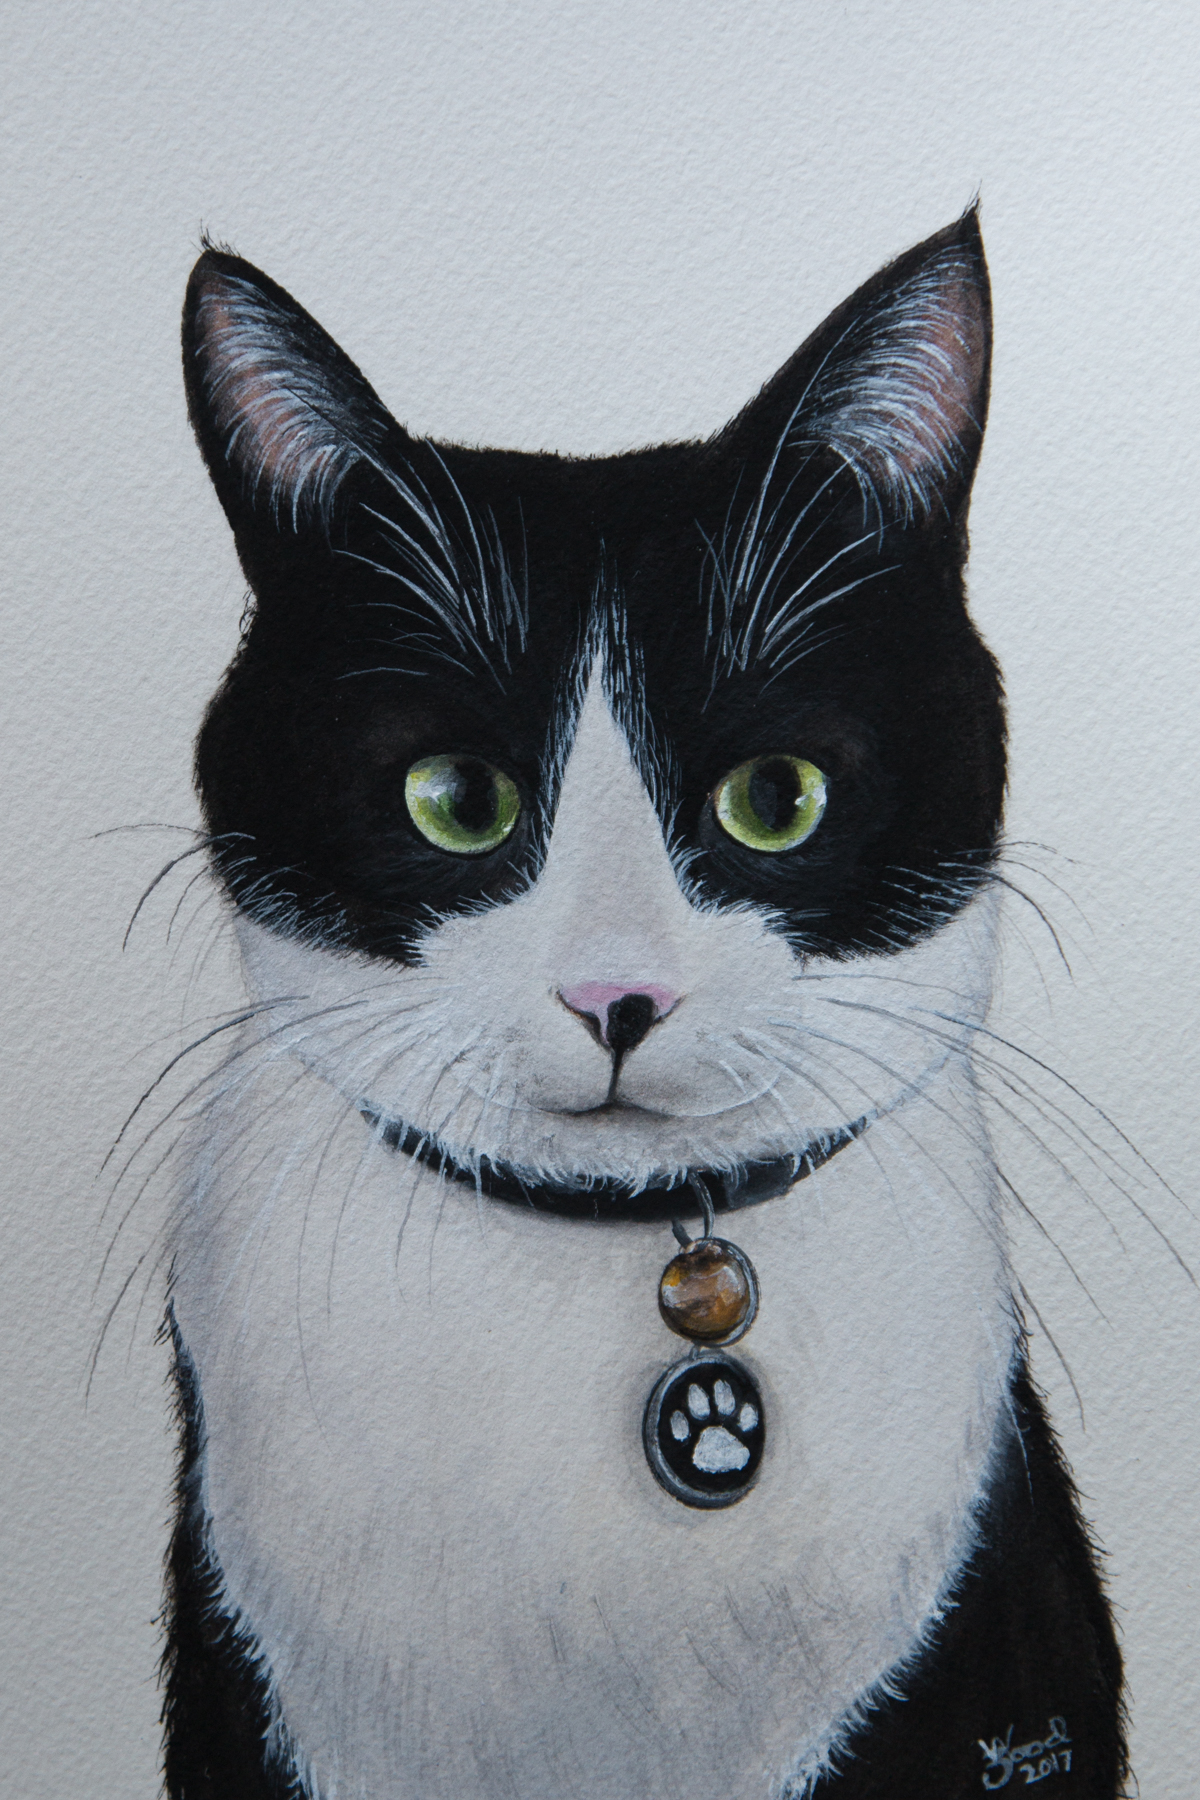 """""""We couldn't have been more thrilled with the portrait of our dear Smudge. What we love most is the way Zoe captured her eyes so realistically (they're a bit googly) and her Batman mask on her face. I would recommend Zoe's incredible artistic talents without hesitation to anyone wanting to immortalise their special furry friend."""" - Matthew and Toby, Williamstown"""